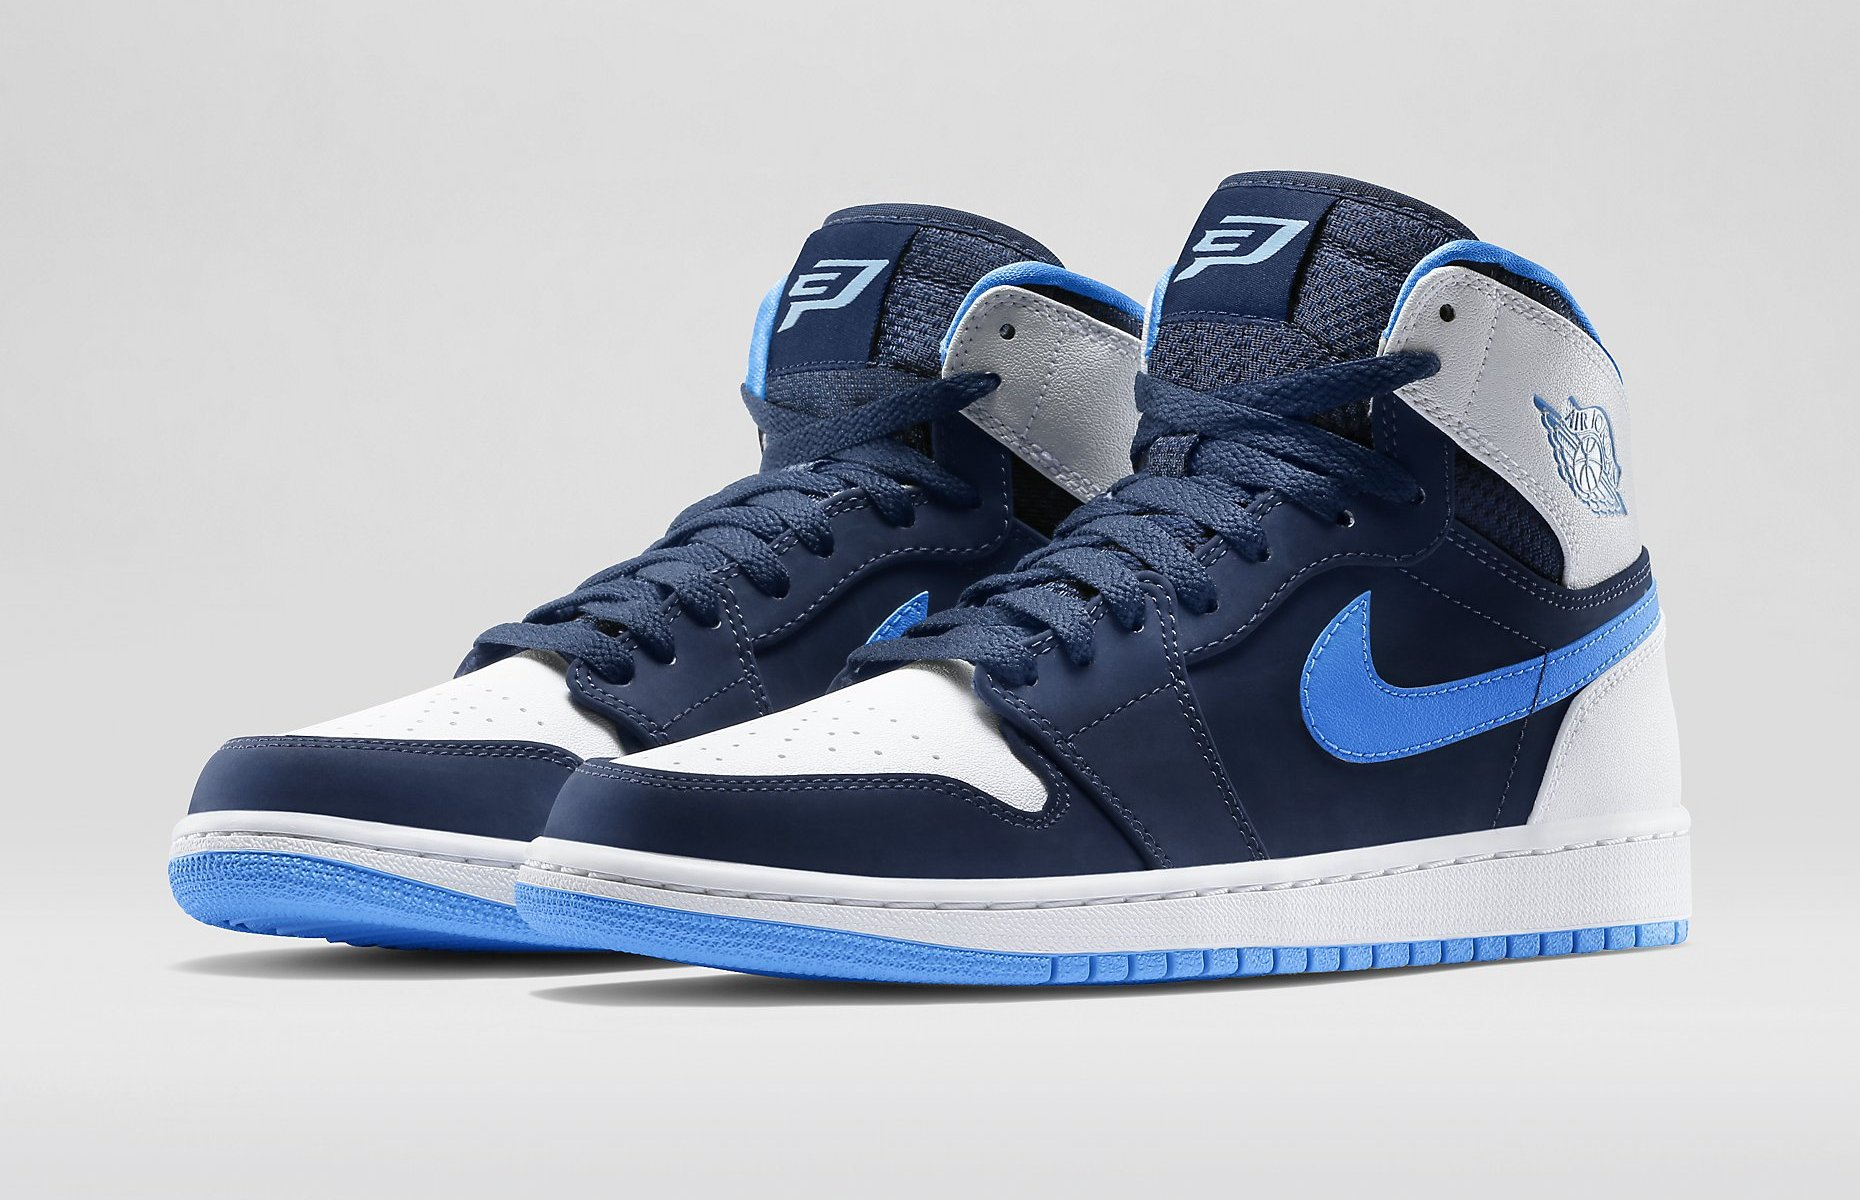 Air Jordan 1 Retro High Color Midnight Navy/White/University Blue Style 332550 402